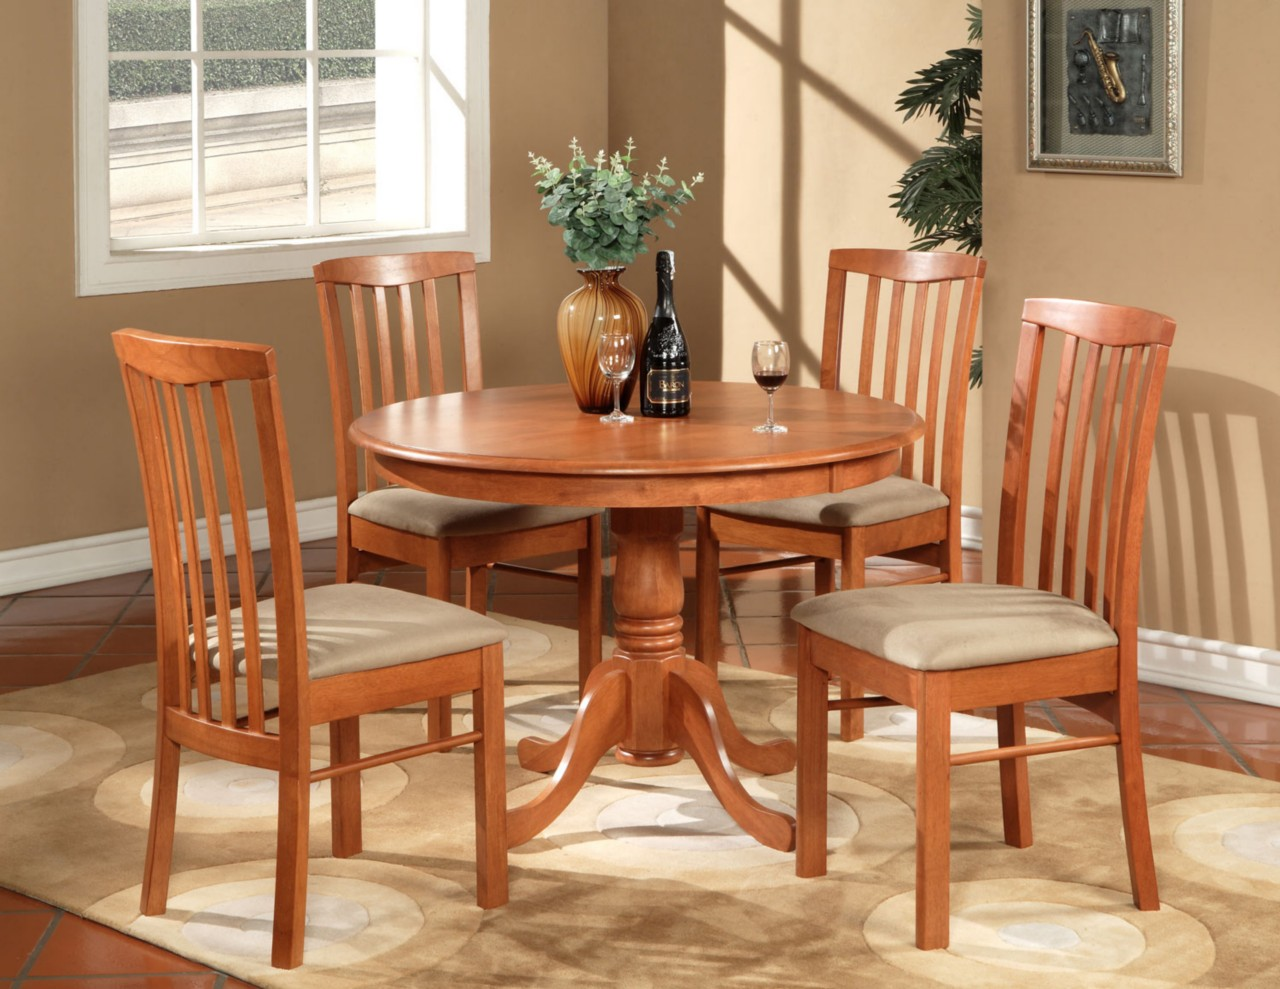 4 Chair Kitchen Table Set Of 5pc Hartland Round Dinette Kitchen Table Set With 4